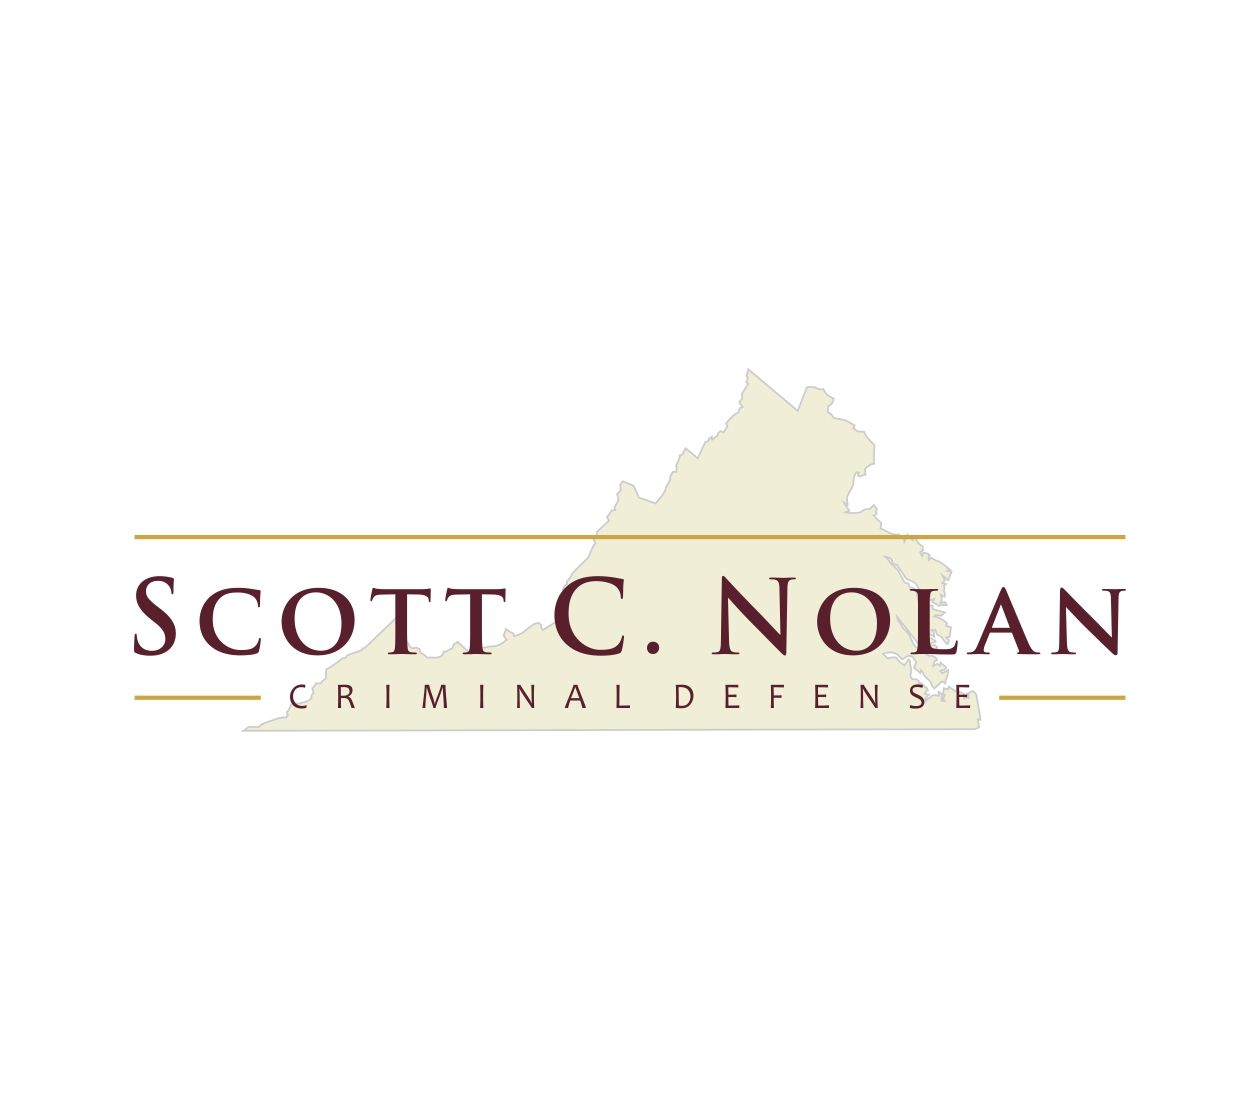 The Criminal Defense Law Firm, Scott Nolan | Carluzzo, Rochkind & Smith, P.C., Has the Experience Needed to Fight Criminal Charges in Manassas, VA